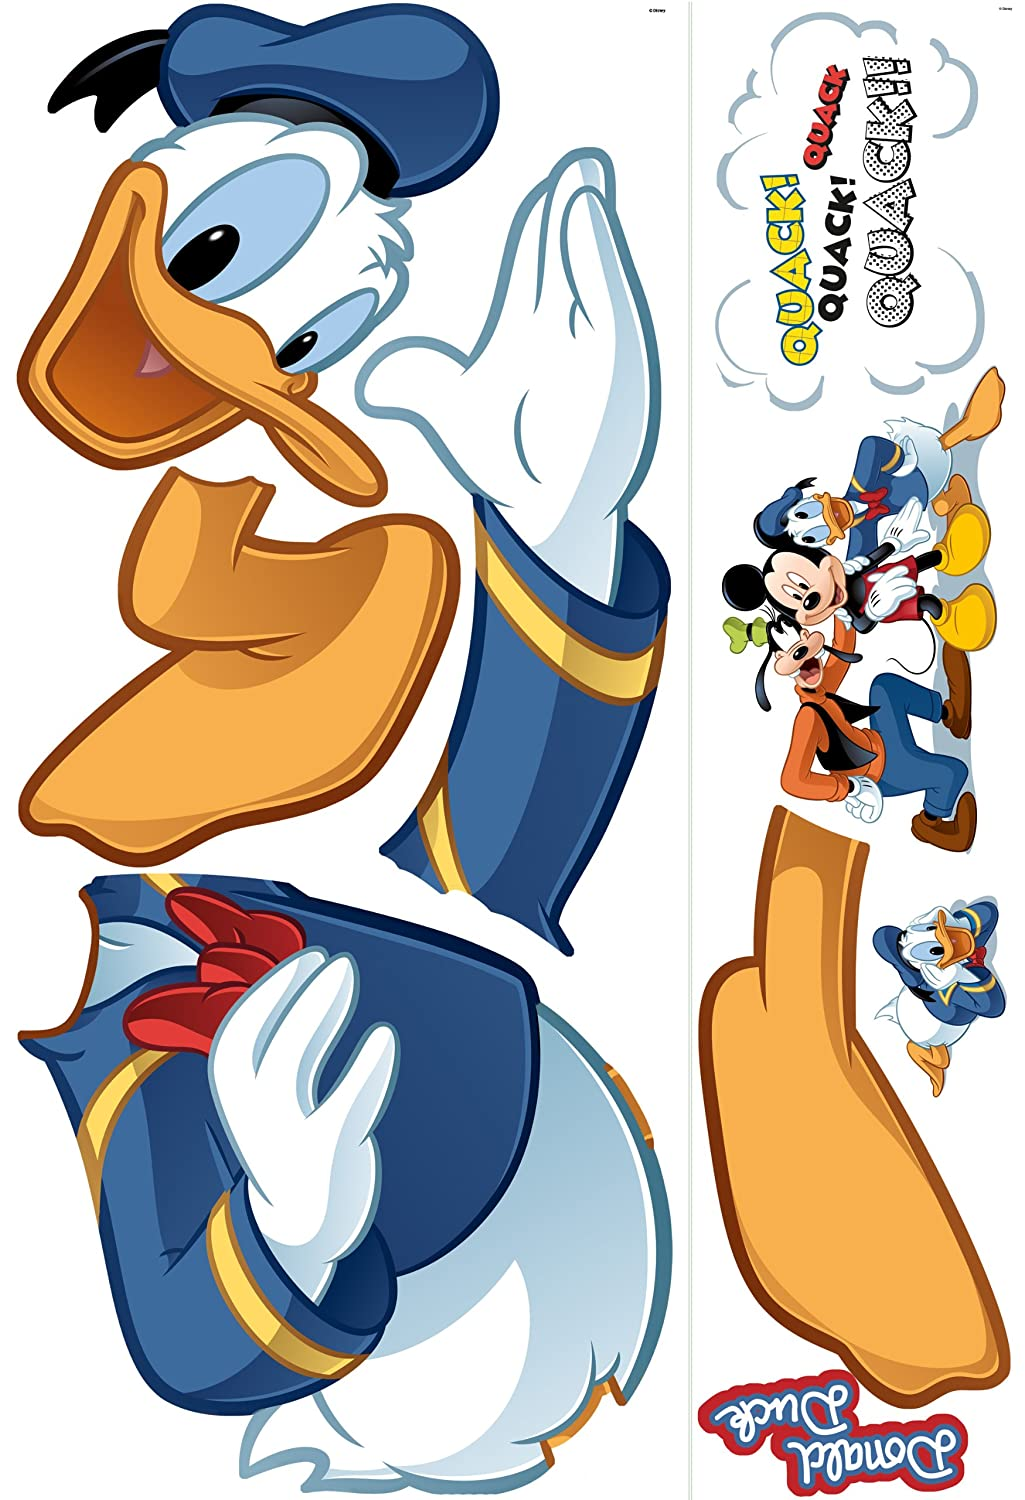 Amazon.com: Roommates Rmk1512Gm Donald Duck Peel And Stick Giant Wall Decal:  Home Improvement